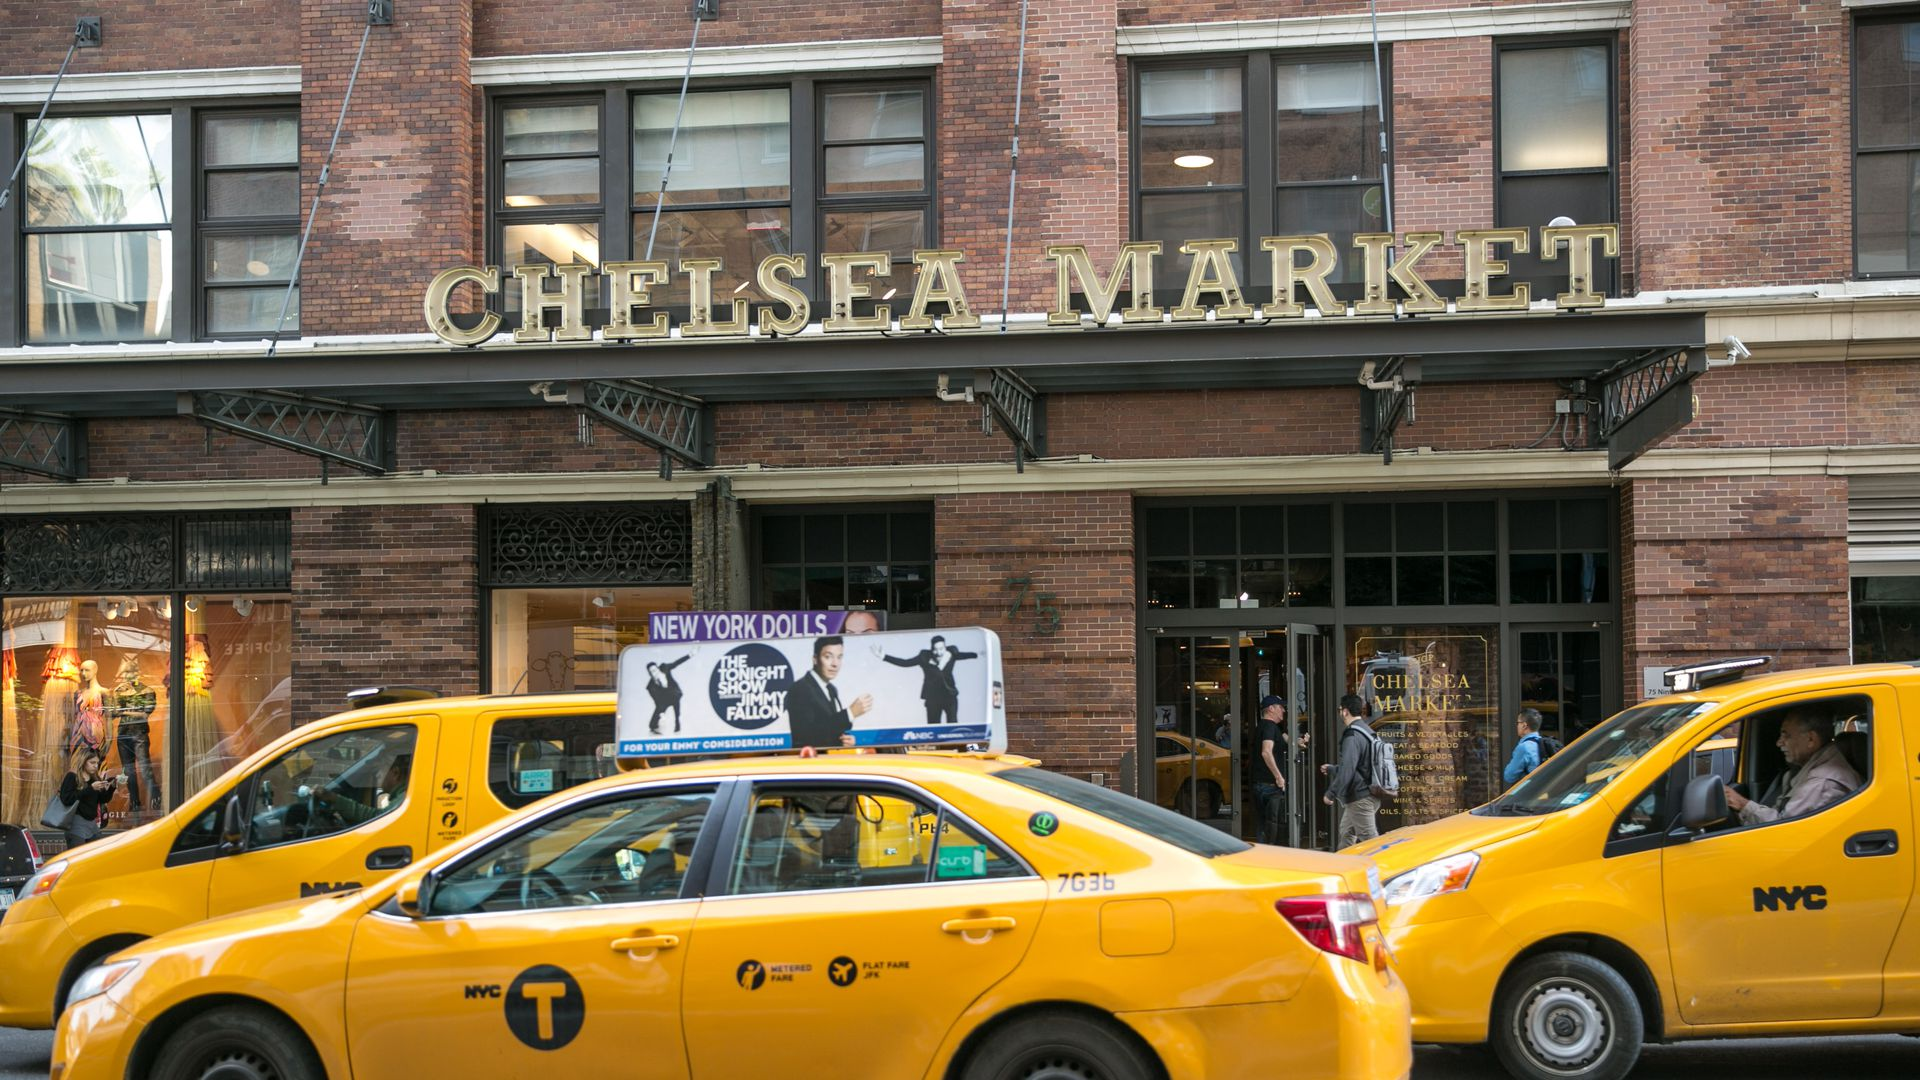 Yellow cabs in front of the entrance to the Chelsea Market building